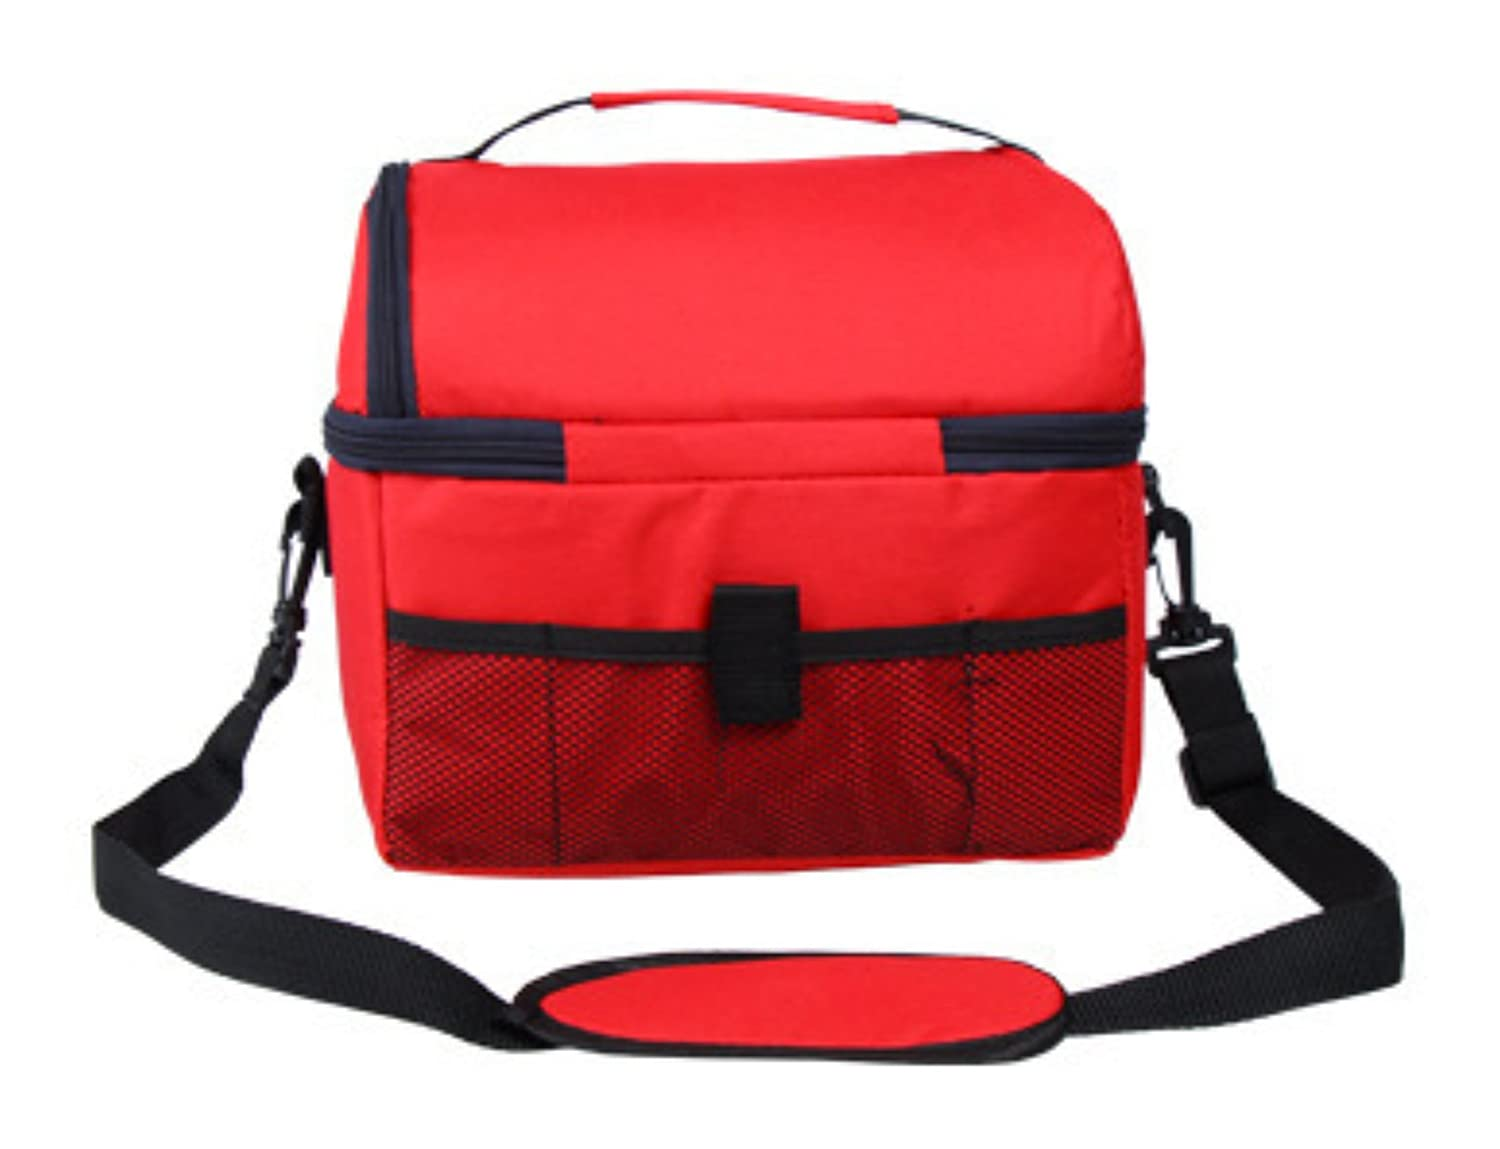 School High Capacity Rose Elonglin Waterptoof Oxford Cool Bag // Cool Box // Picnic Bag for Camping Sport Travel Work and Maternity